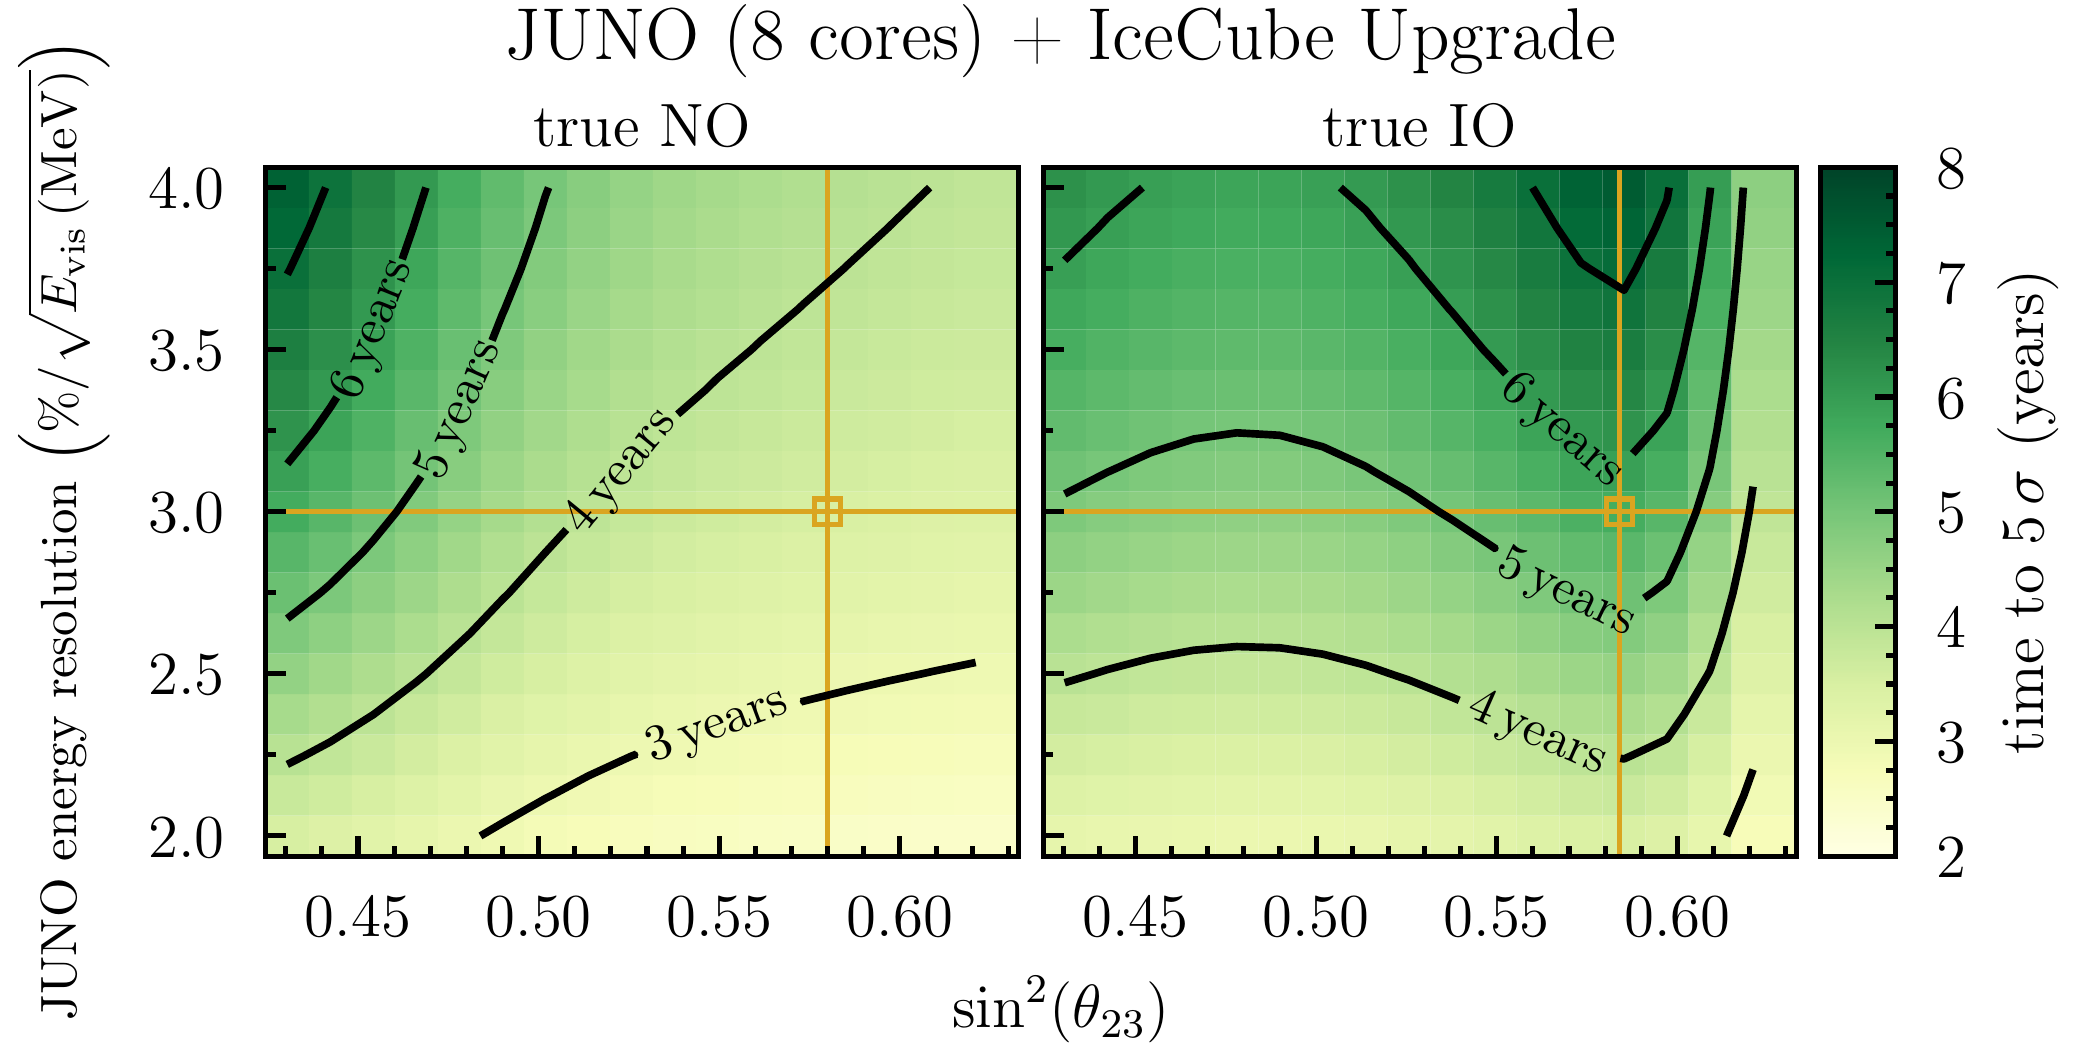 news_feat_putting-neutrino-masses-in-their-place-soon-with-icecube-upgrade-and-juno